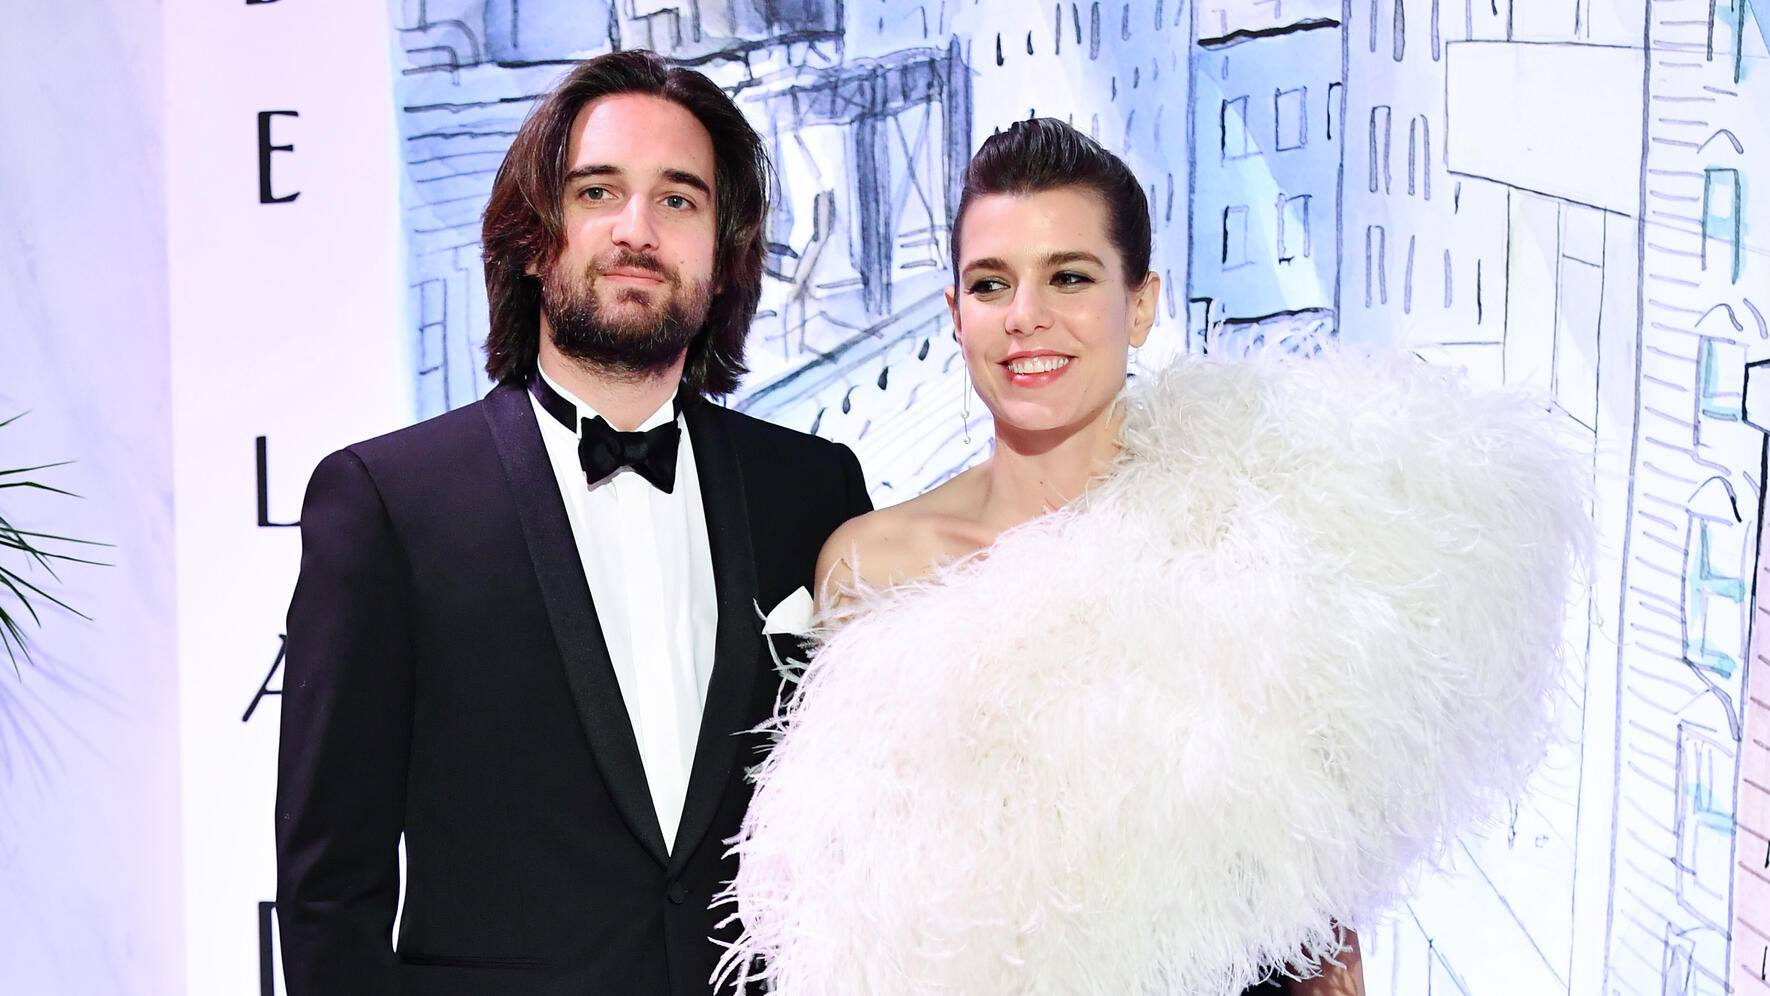 MONTE-CARLO, MONACO - MARCH 24:  Dimitri Rassam and Charlotte Casiraghi arrive at the Rose Ball 2018 To Benefit The Princess Grace Foundation at Sporting Monte-Carlo on March 24, 2018 in Monte-Carlo, Monaco. (Photo by Pascal Le Segretain/ SC Pool - Corbis/Corbis via Getty Images)